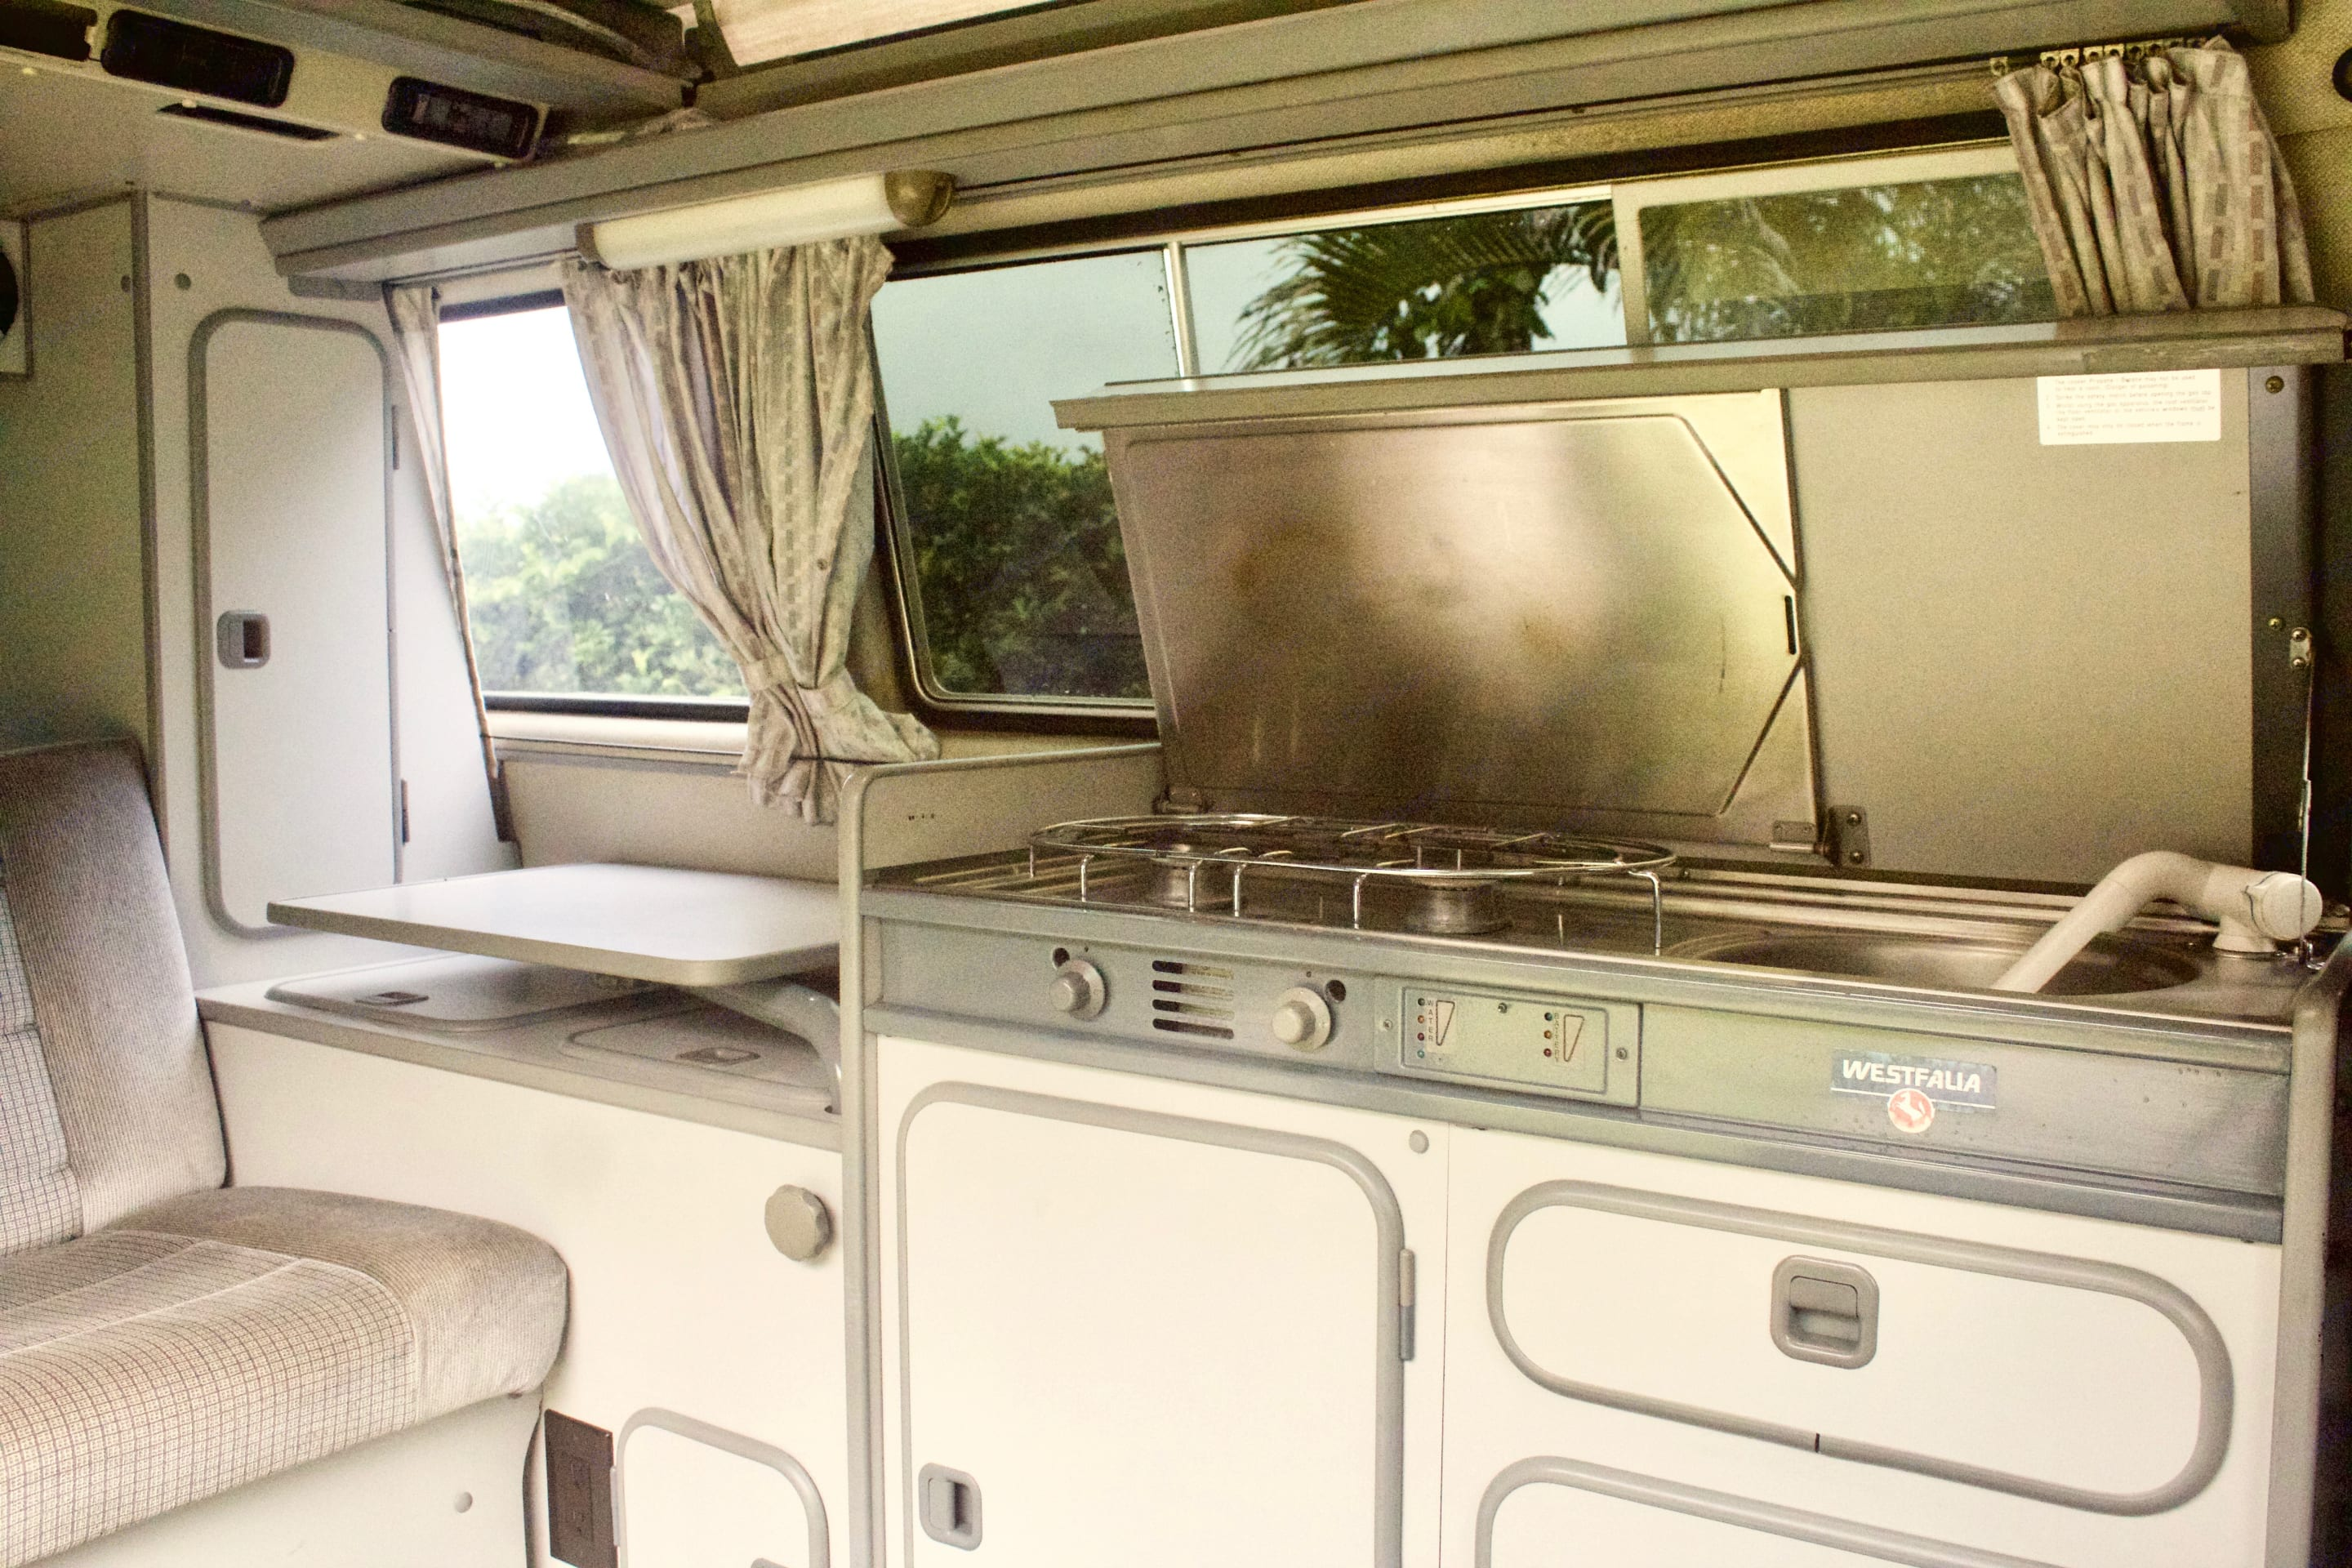 For the Chef in the group!. Volkswagen Westfalia 1987